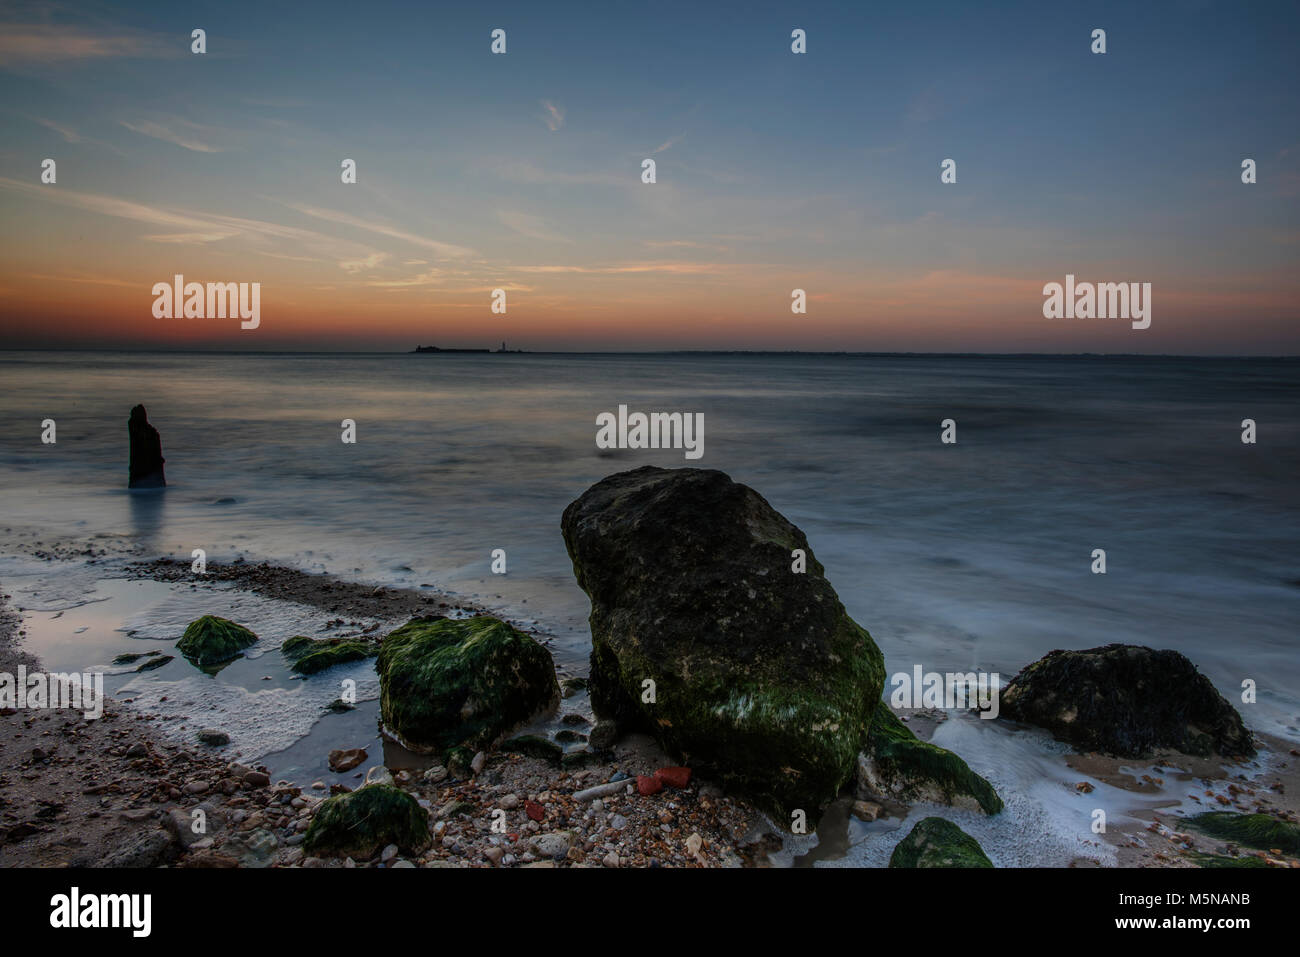 sunset or sun down over the beach on the coast of the isle of wight. atmospheric seascape or landscape at dusk with - Stock Image